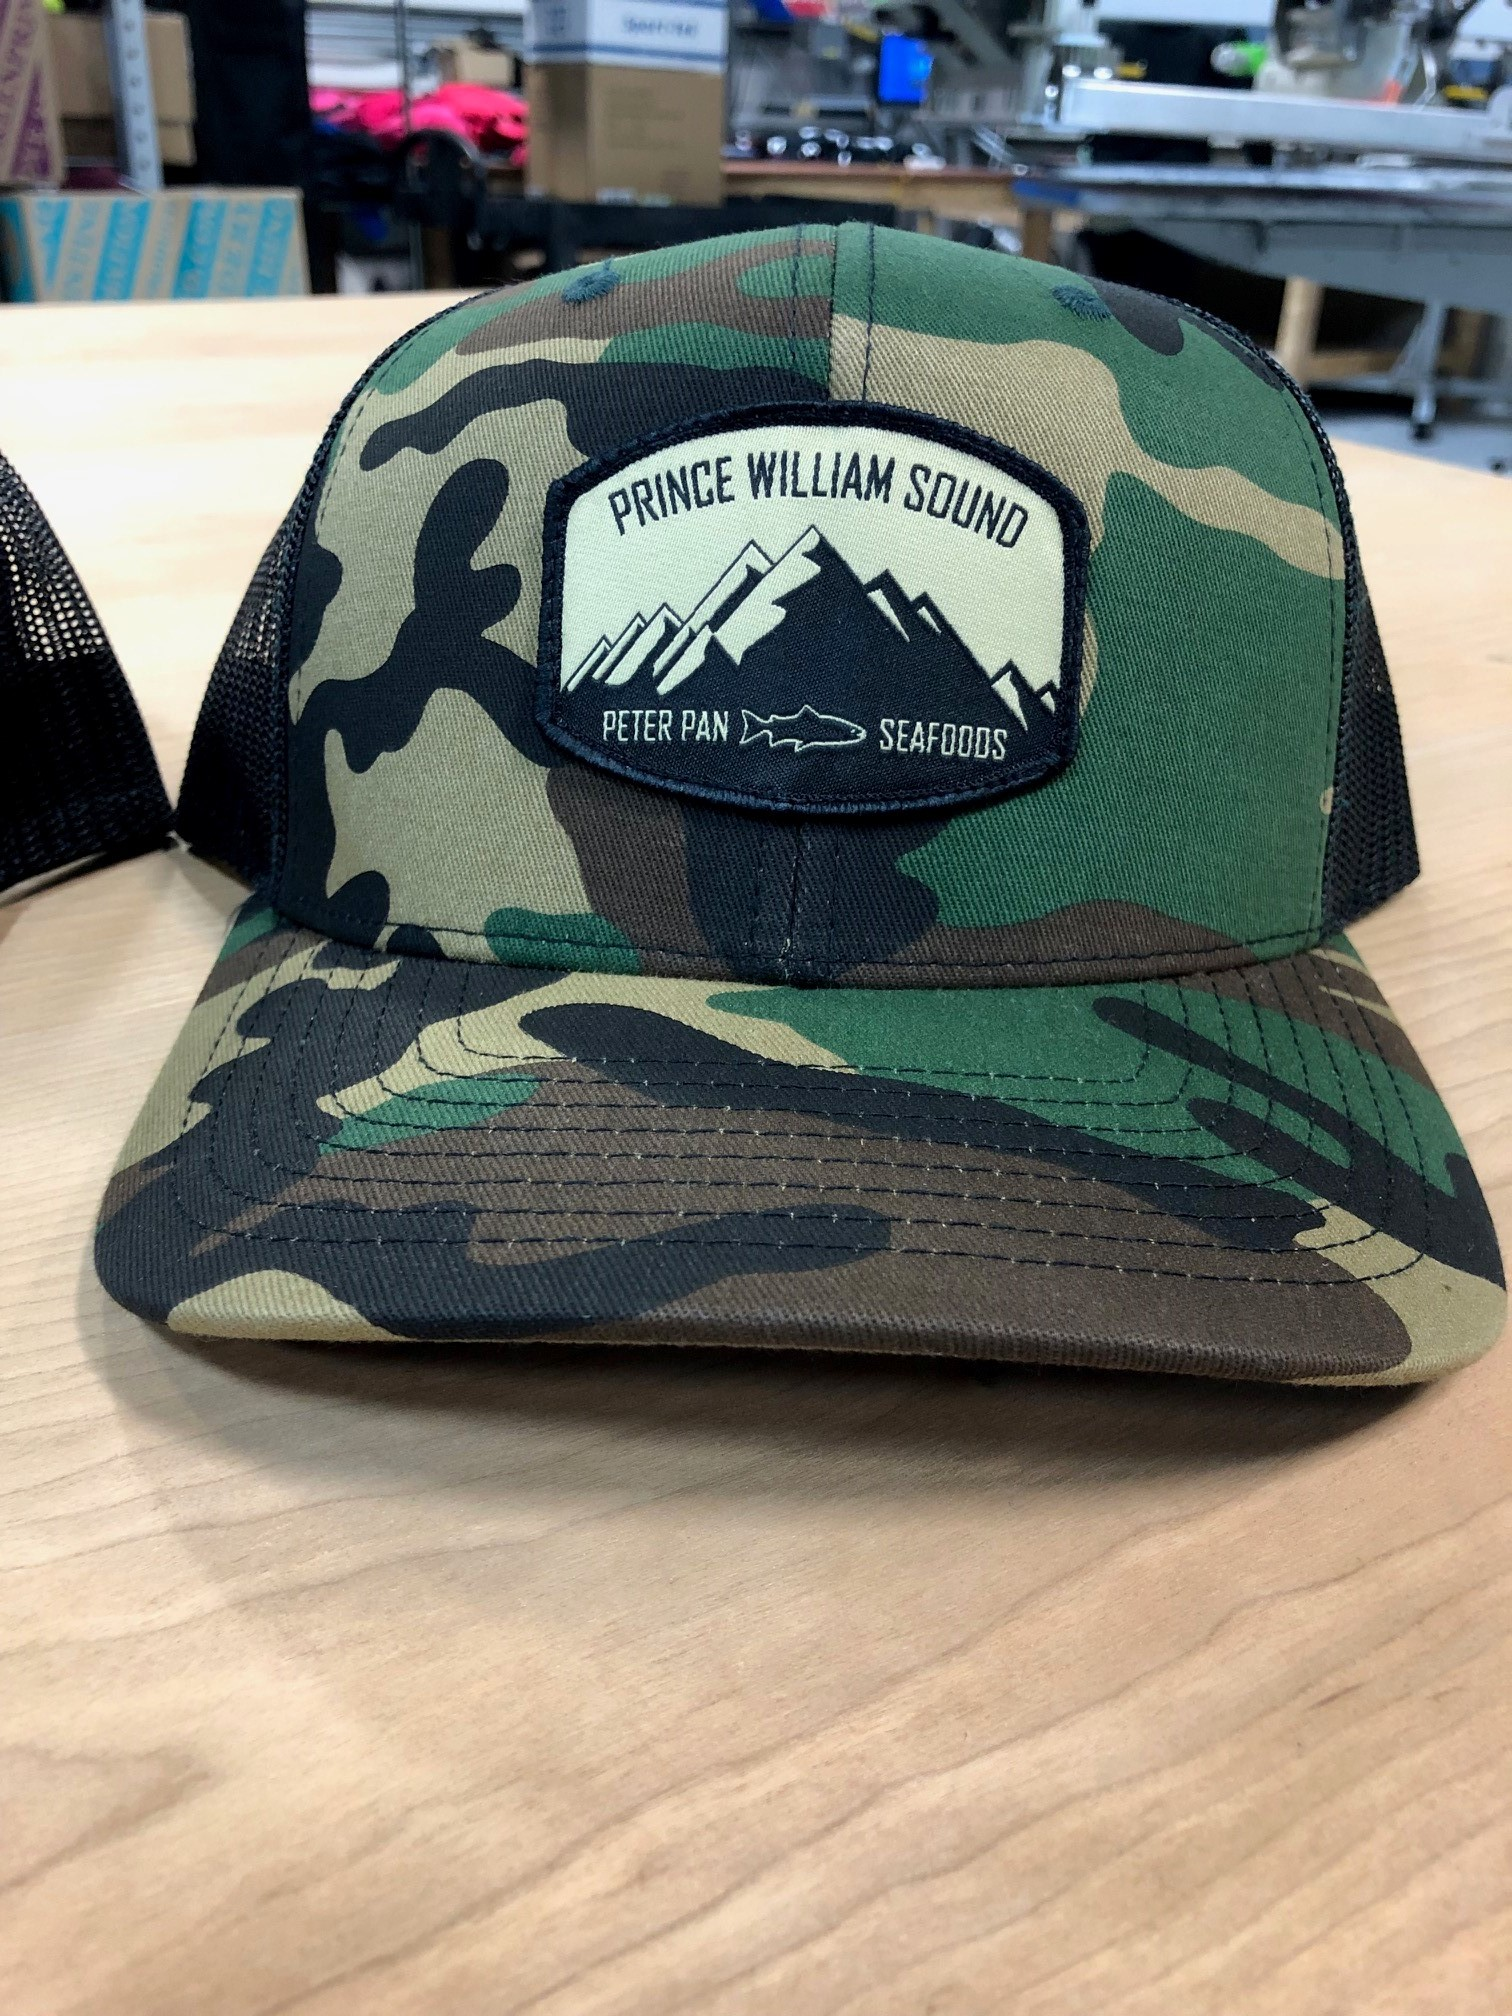 logounltd_laser_etching_embroidery_screen_printing_apparel_uniform_custom_tshirts_kirkland_bellevue_seattle_redmond_woodinville_branded_merchandise_promotional_products_logo_unltd_peterpanseafoods_alaska_veldez (3).jpg